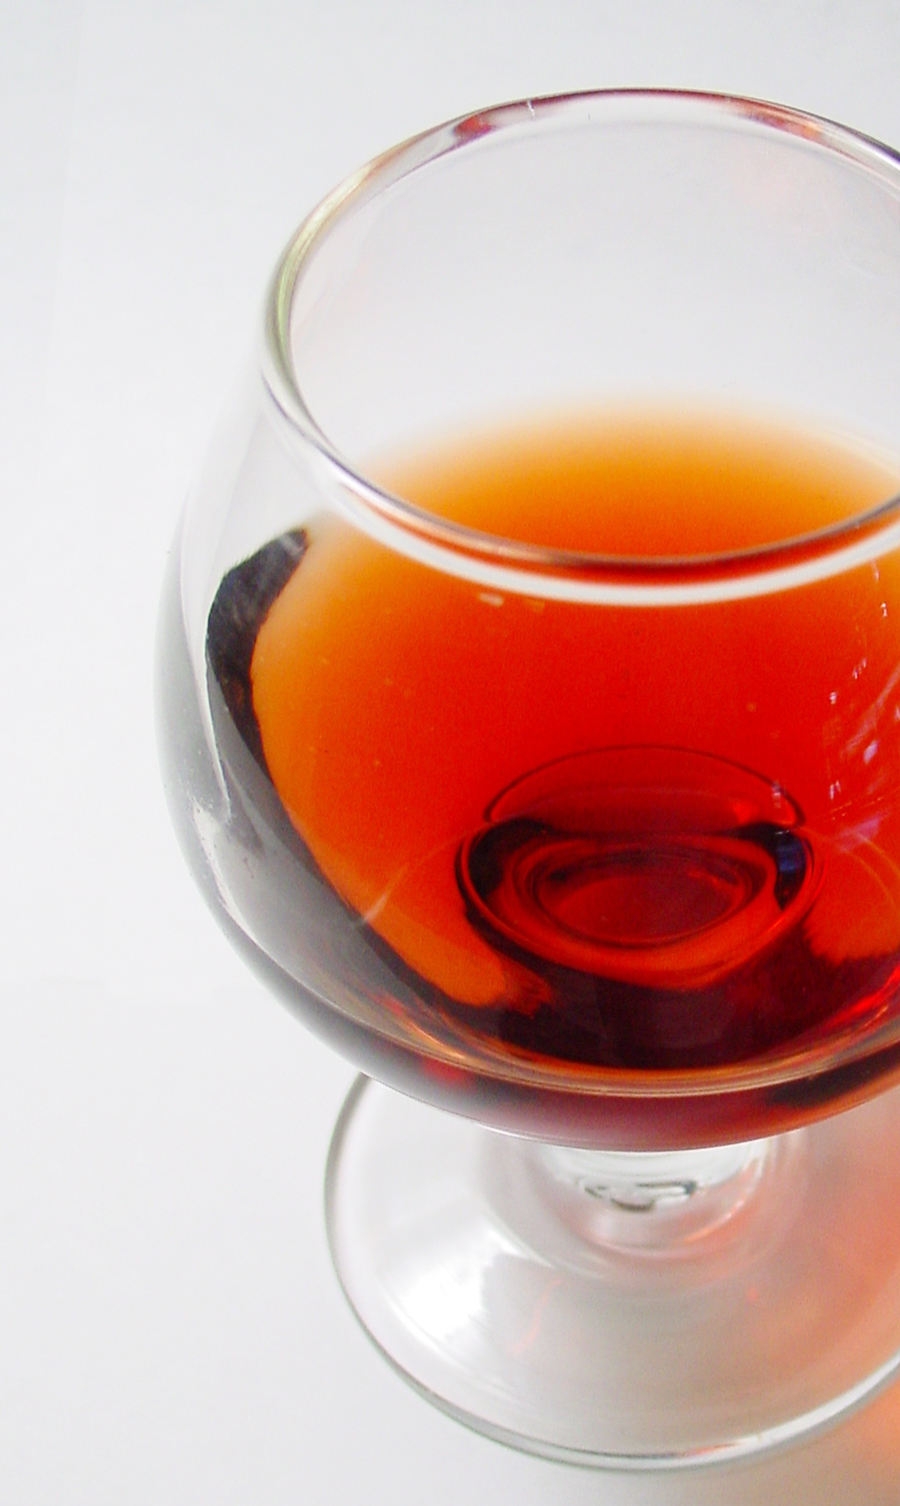 brandy is made from wine